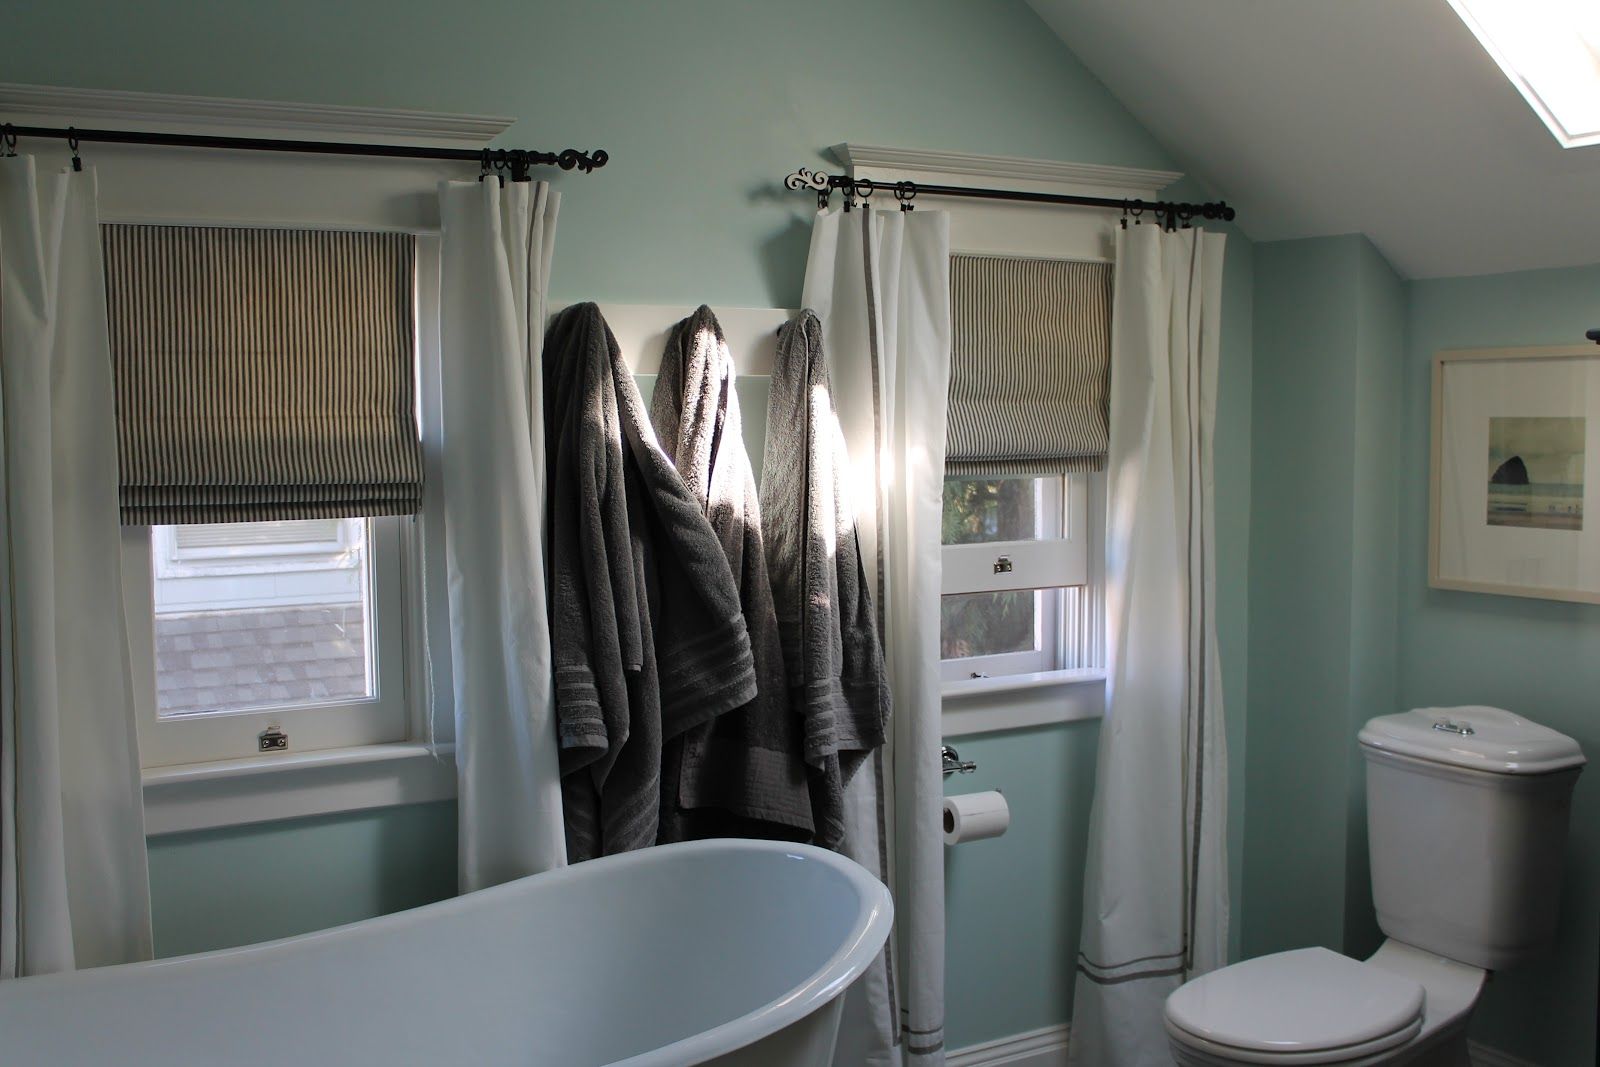 Blinds And Curtains Together Curtains Ideas Blinds And Curtains Together Inspiring Pictures